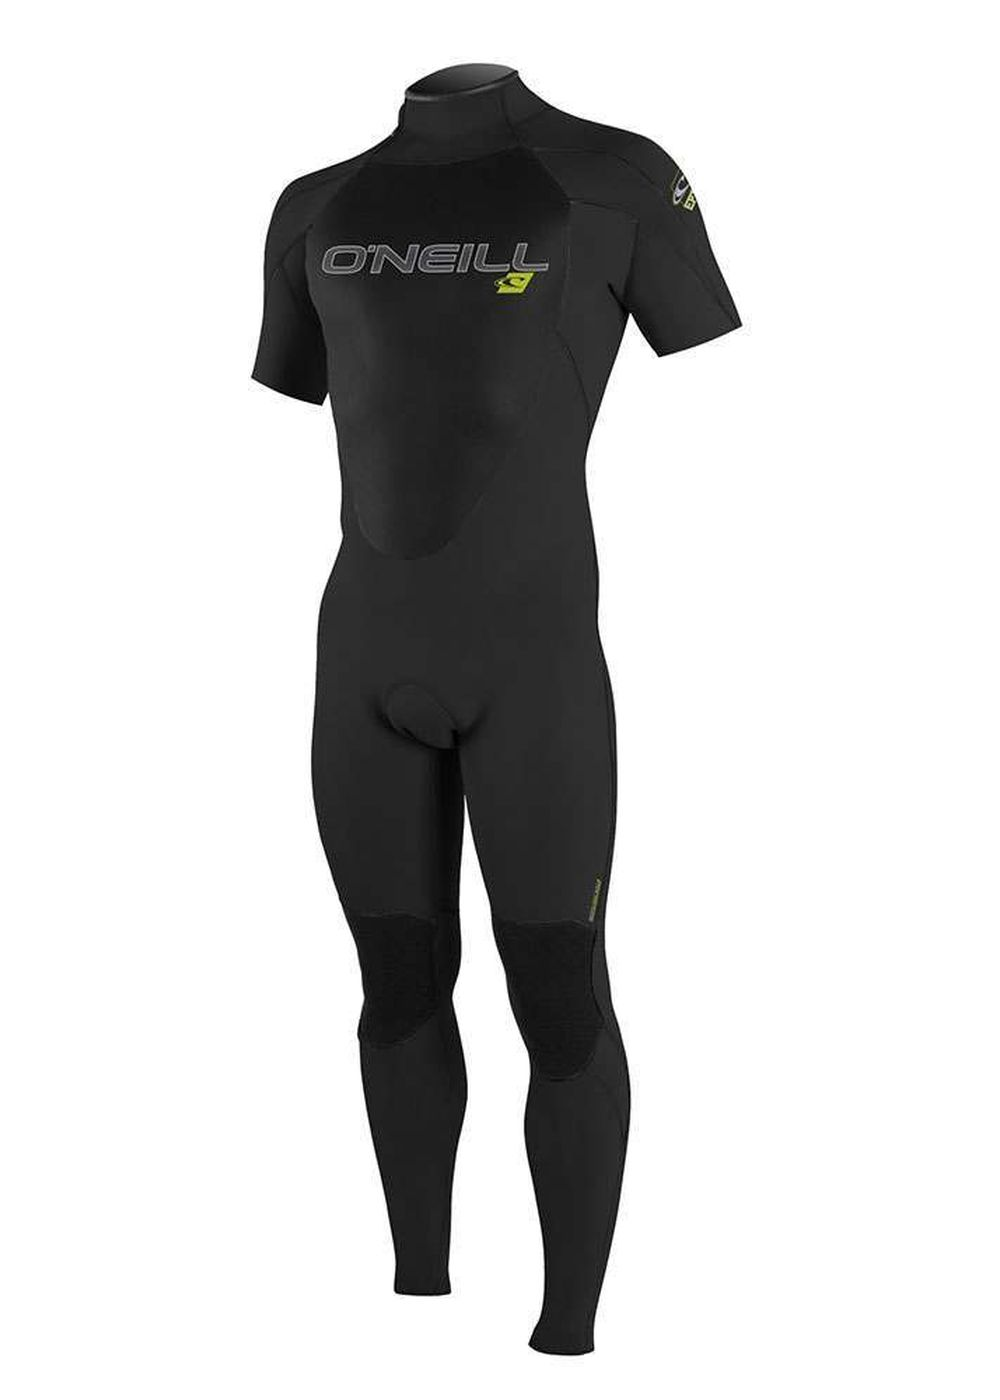 Oneill Epic Bz Short Sleeve 2mm Gbs Wetsuit 15 Blk Picture